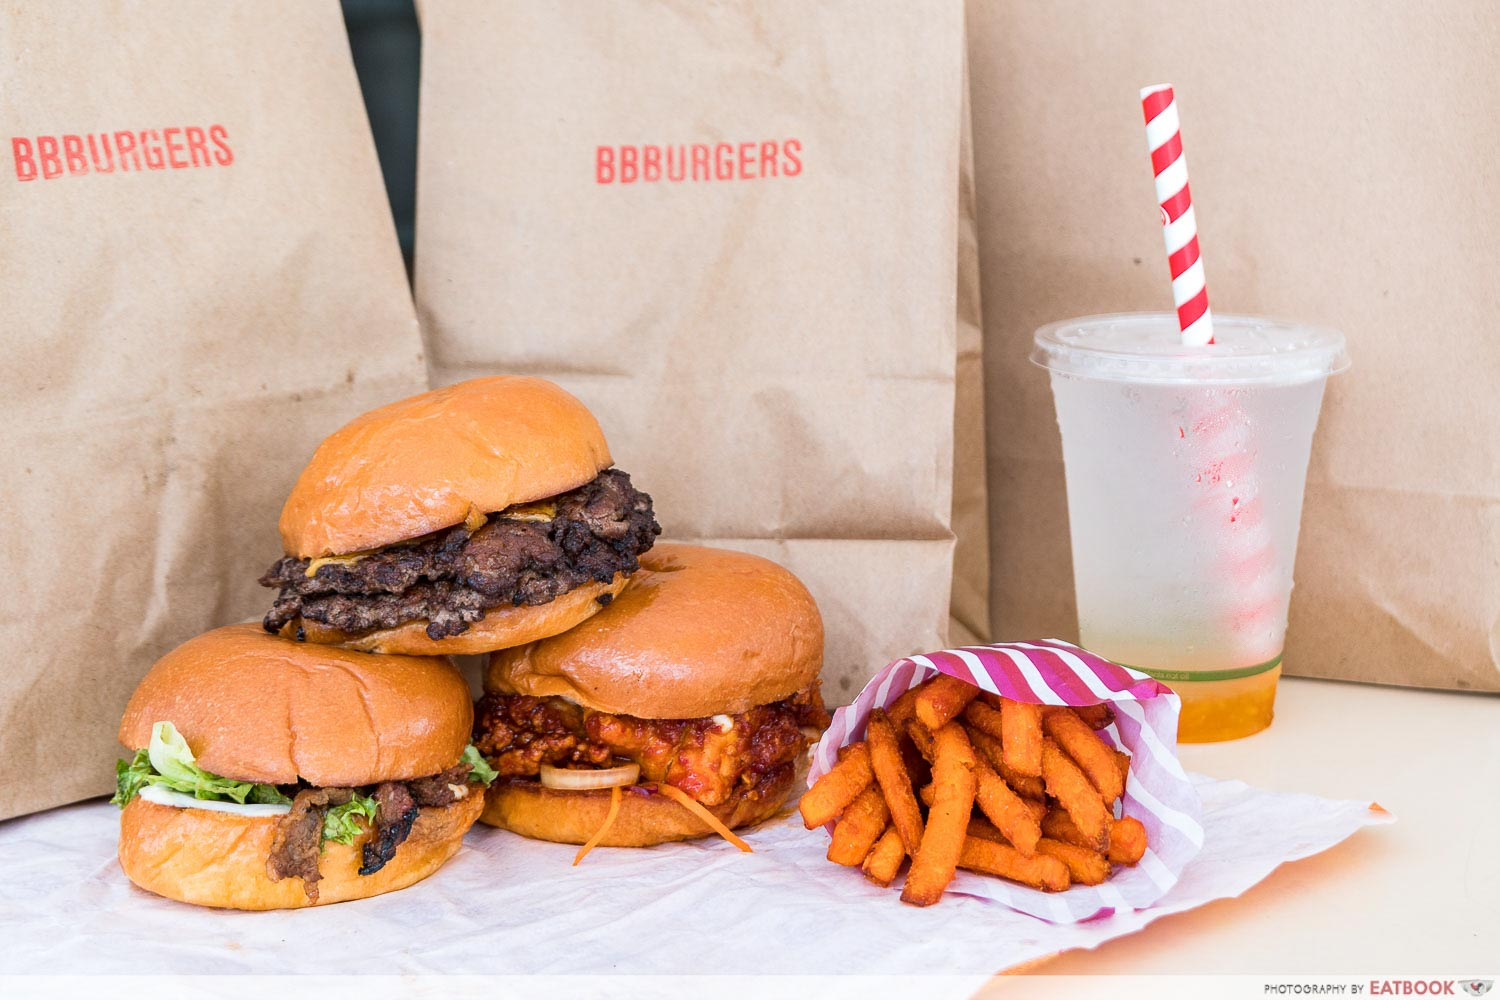 Hawker burger delivery - bbburgers